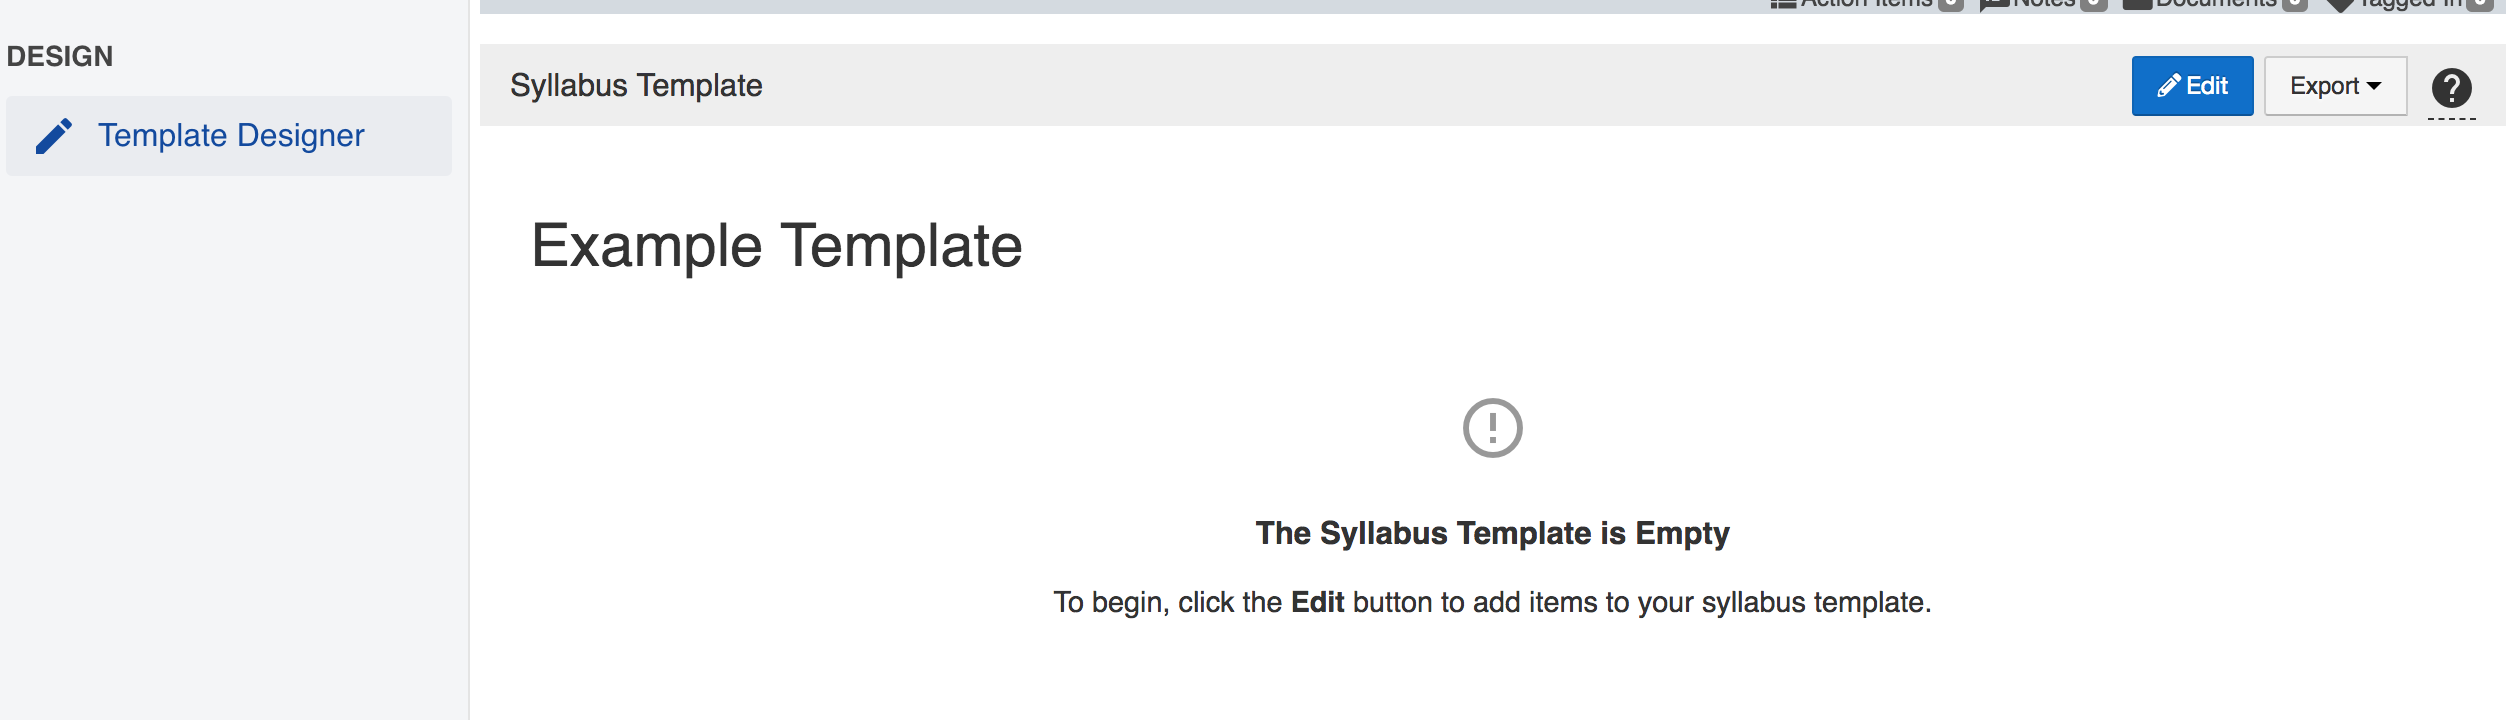 How to Create a Syllabus Template – AEFIS Academy